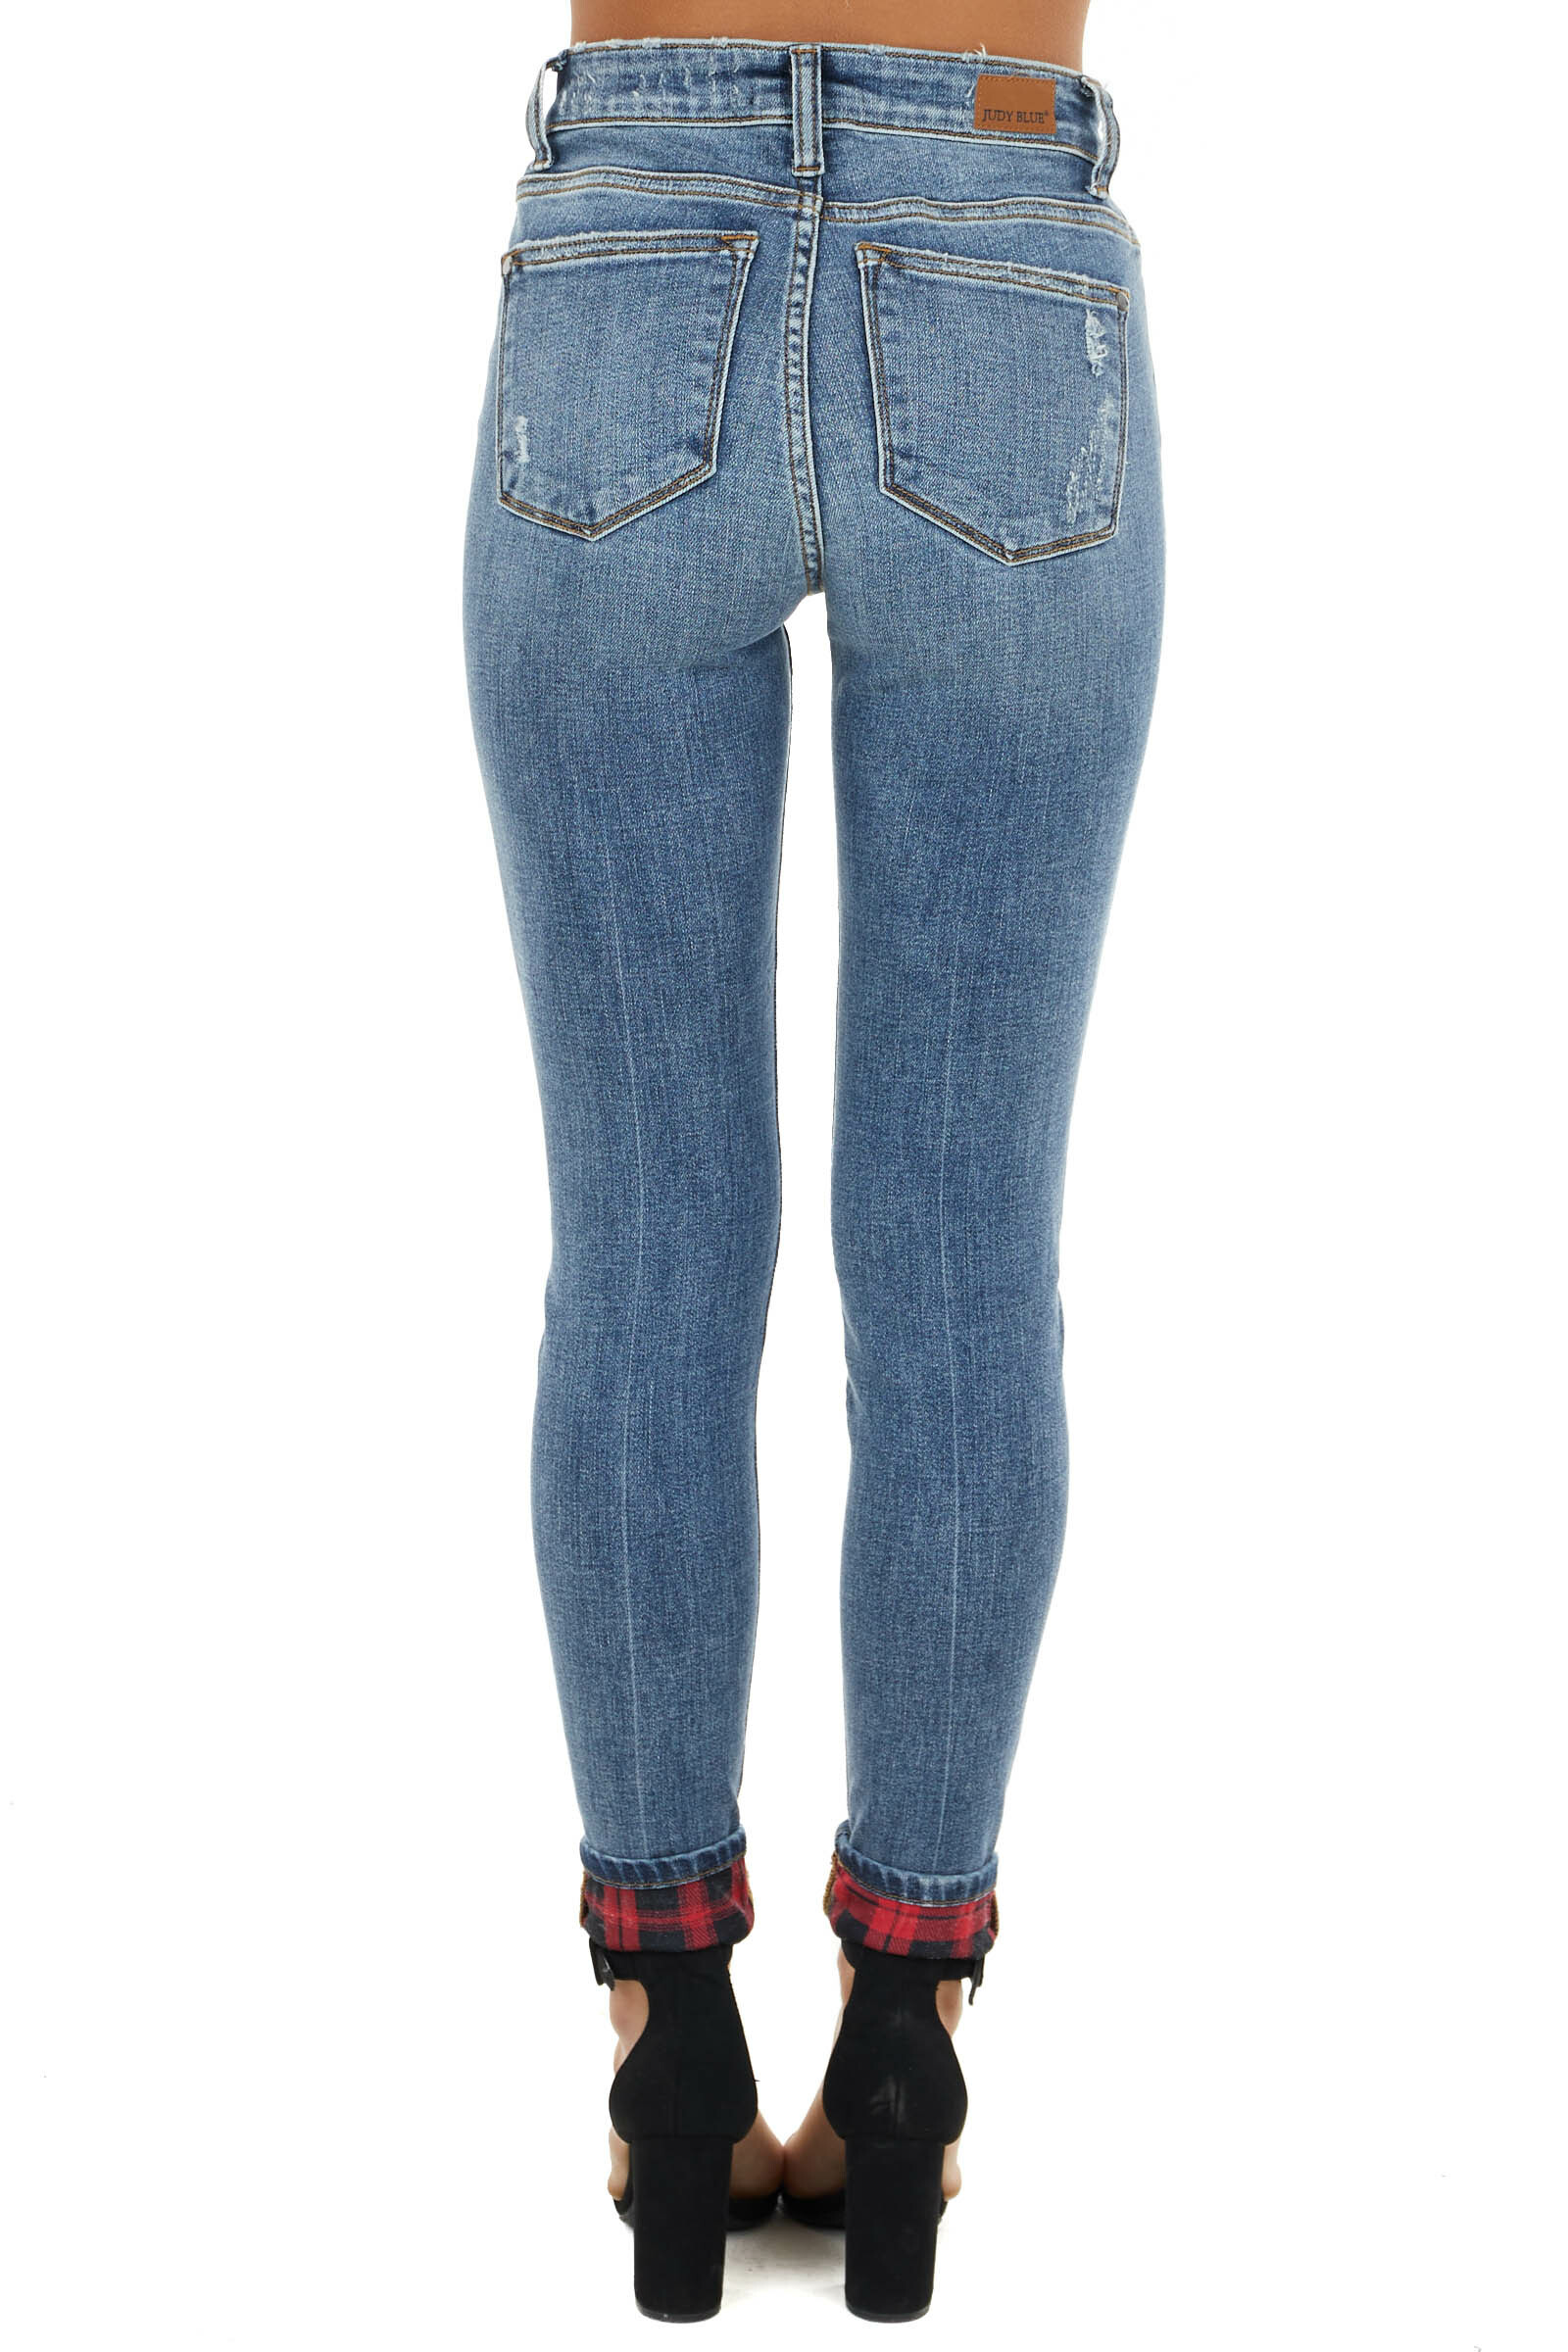 Medium Wash Mid Rise Skinny Jeans with Plaid Patch and Cuffs